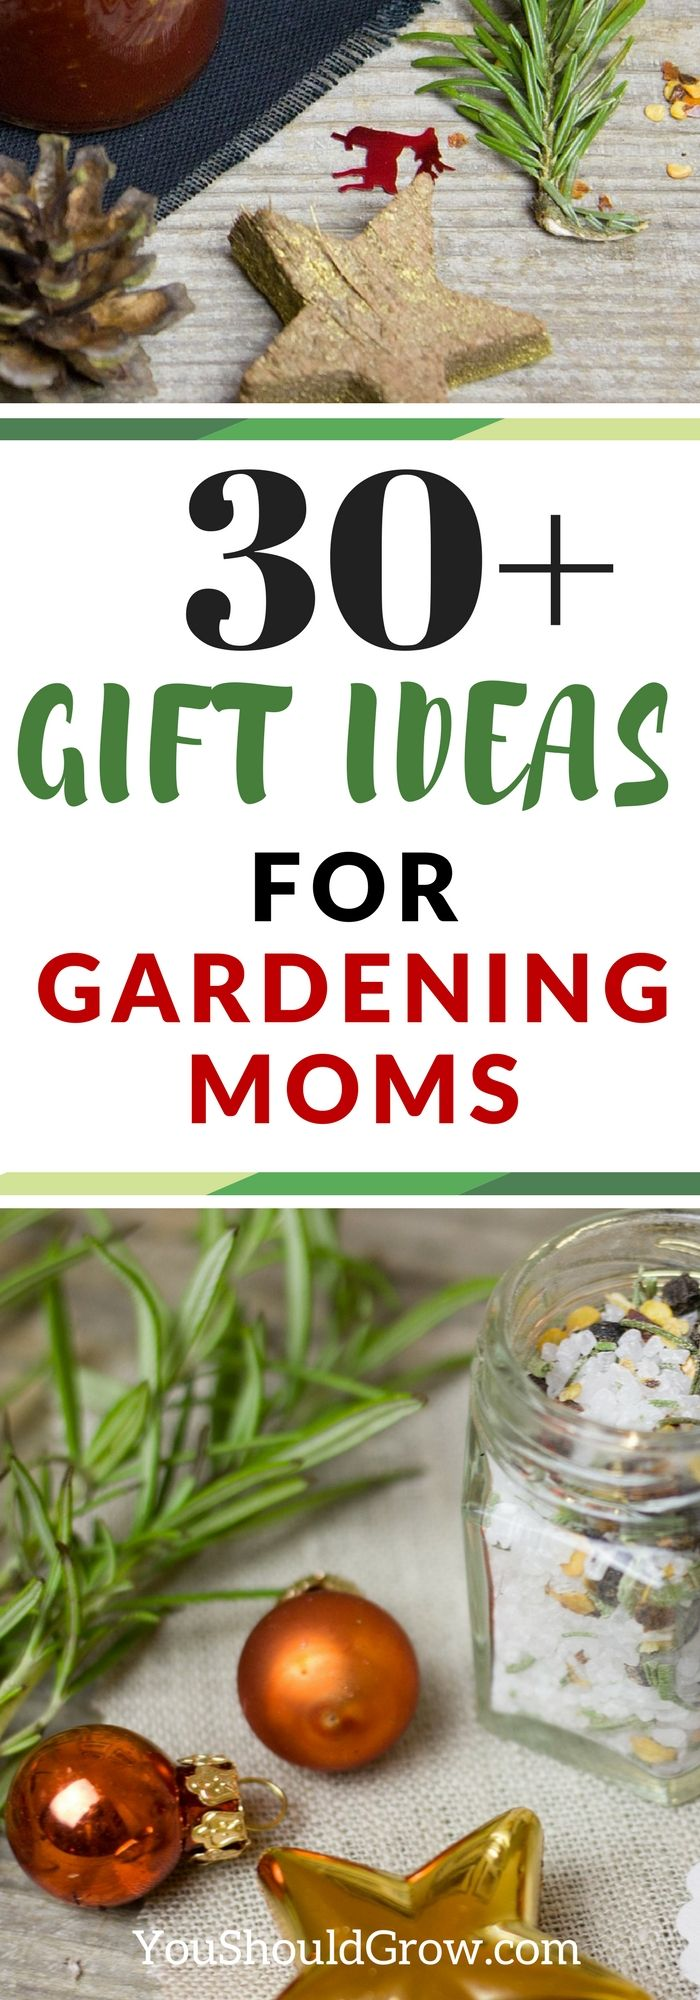 Good If Your Mom Loves To Garden, Get Her A Great Gardening Gift For Christmas  This